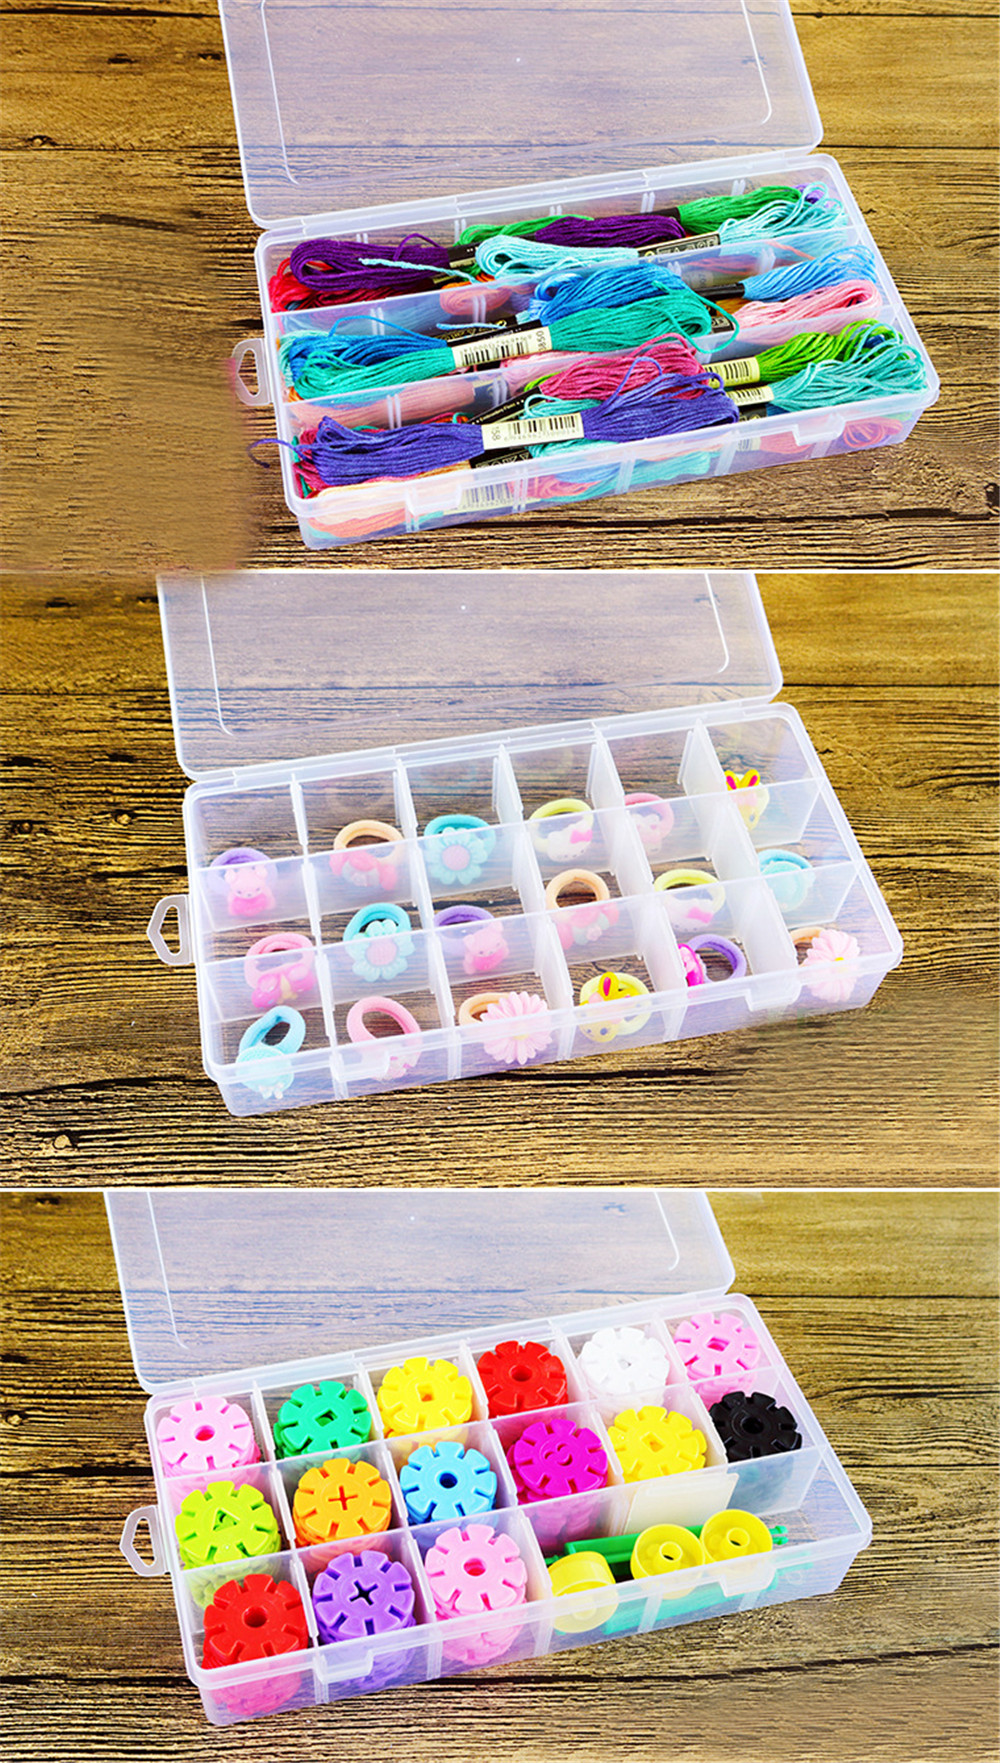 Plastic Jewelry Box Organizer Storage Container DIY Crafts Parts Compartment Divider Clear Slot Box